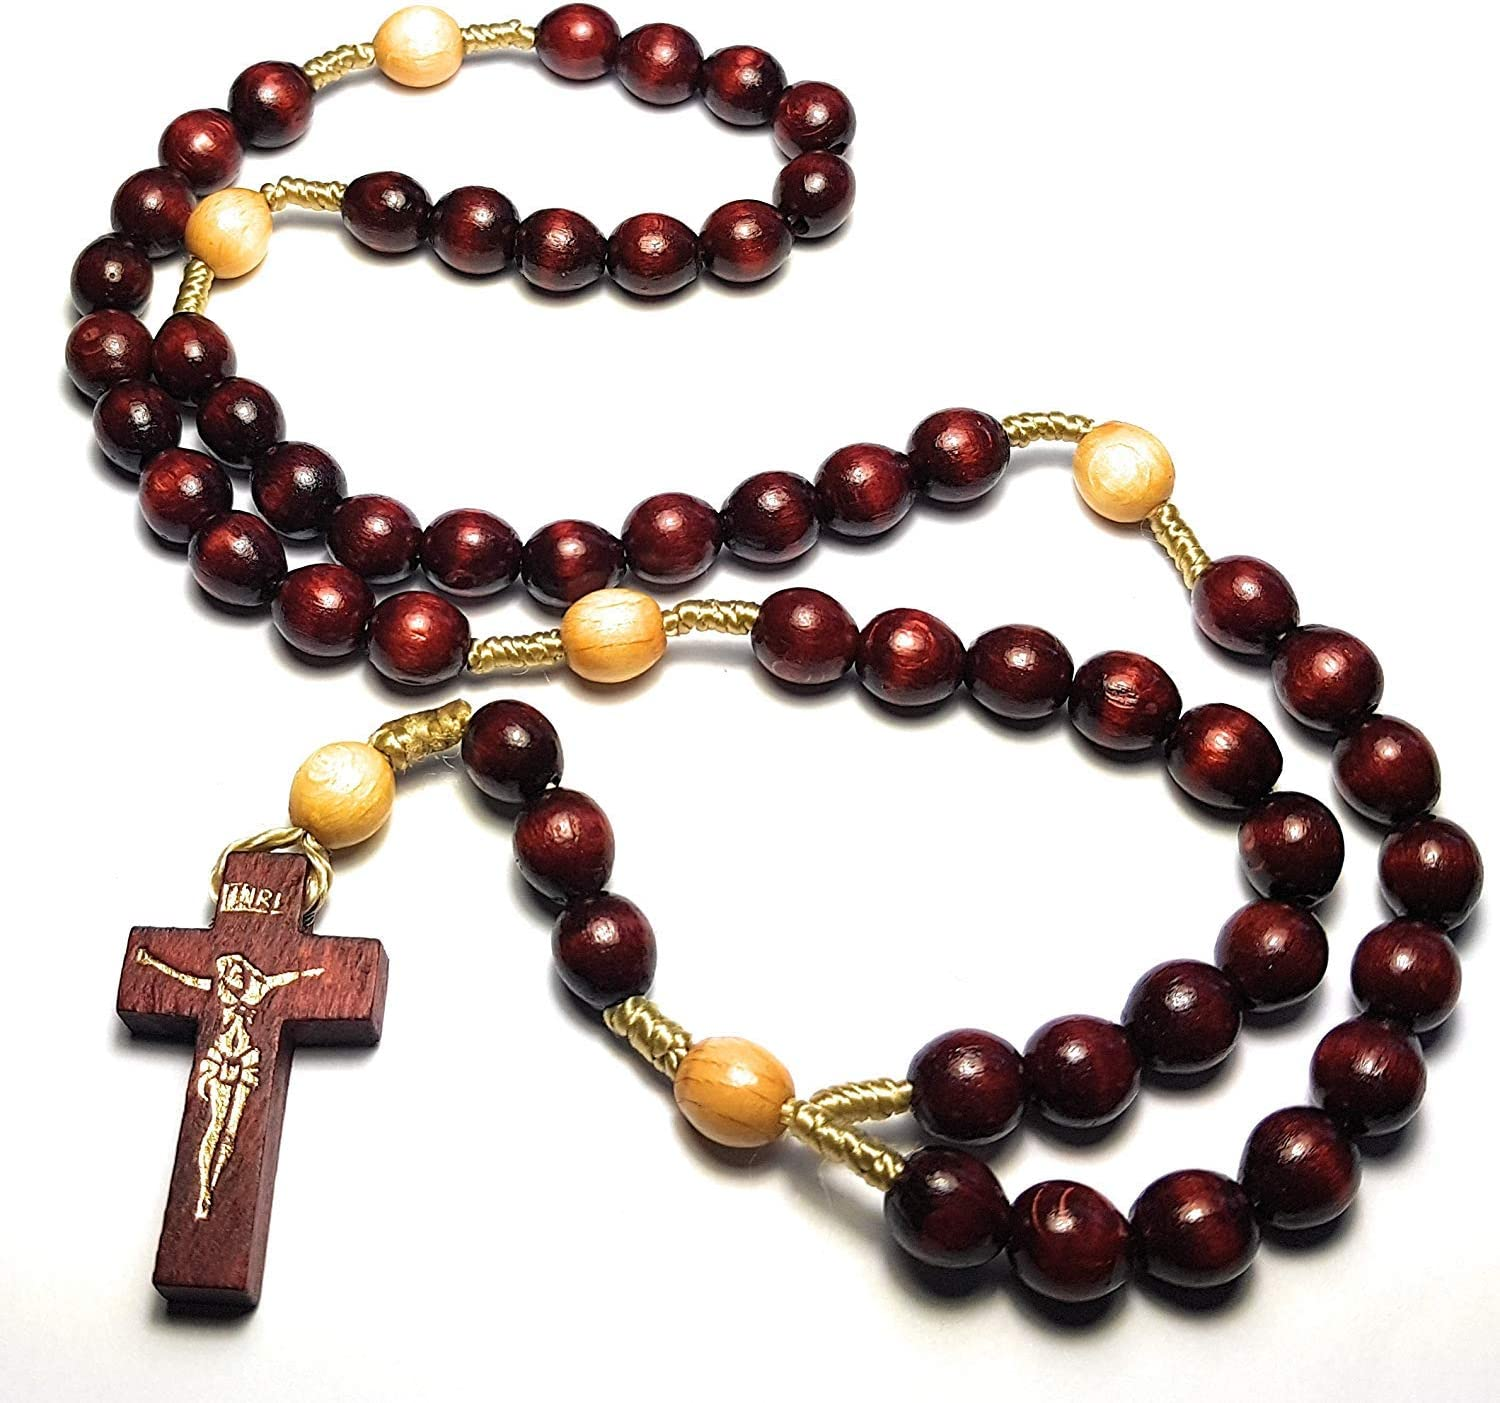 Made in Italy Rosary Blessed by Pope Francis Vatican Rome Holy Father Medal Cross Saint Benedict Patron Saint of Students Christian Veterans US Army solders Addiction Dependence Death (Cherry Small)